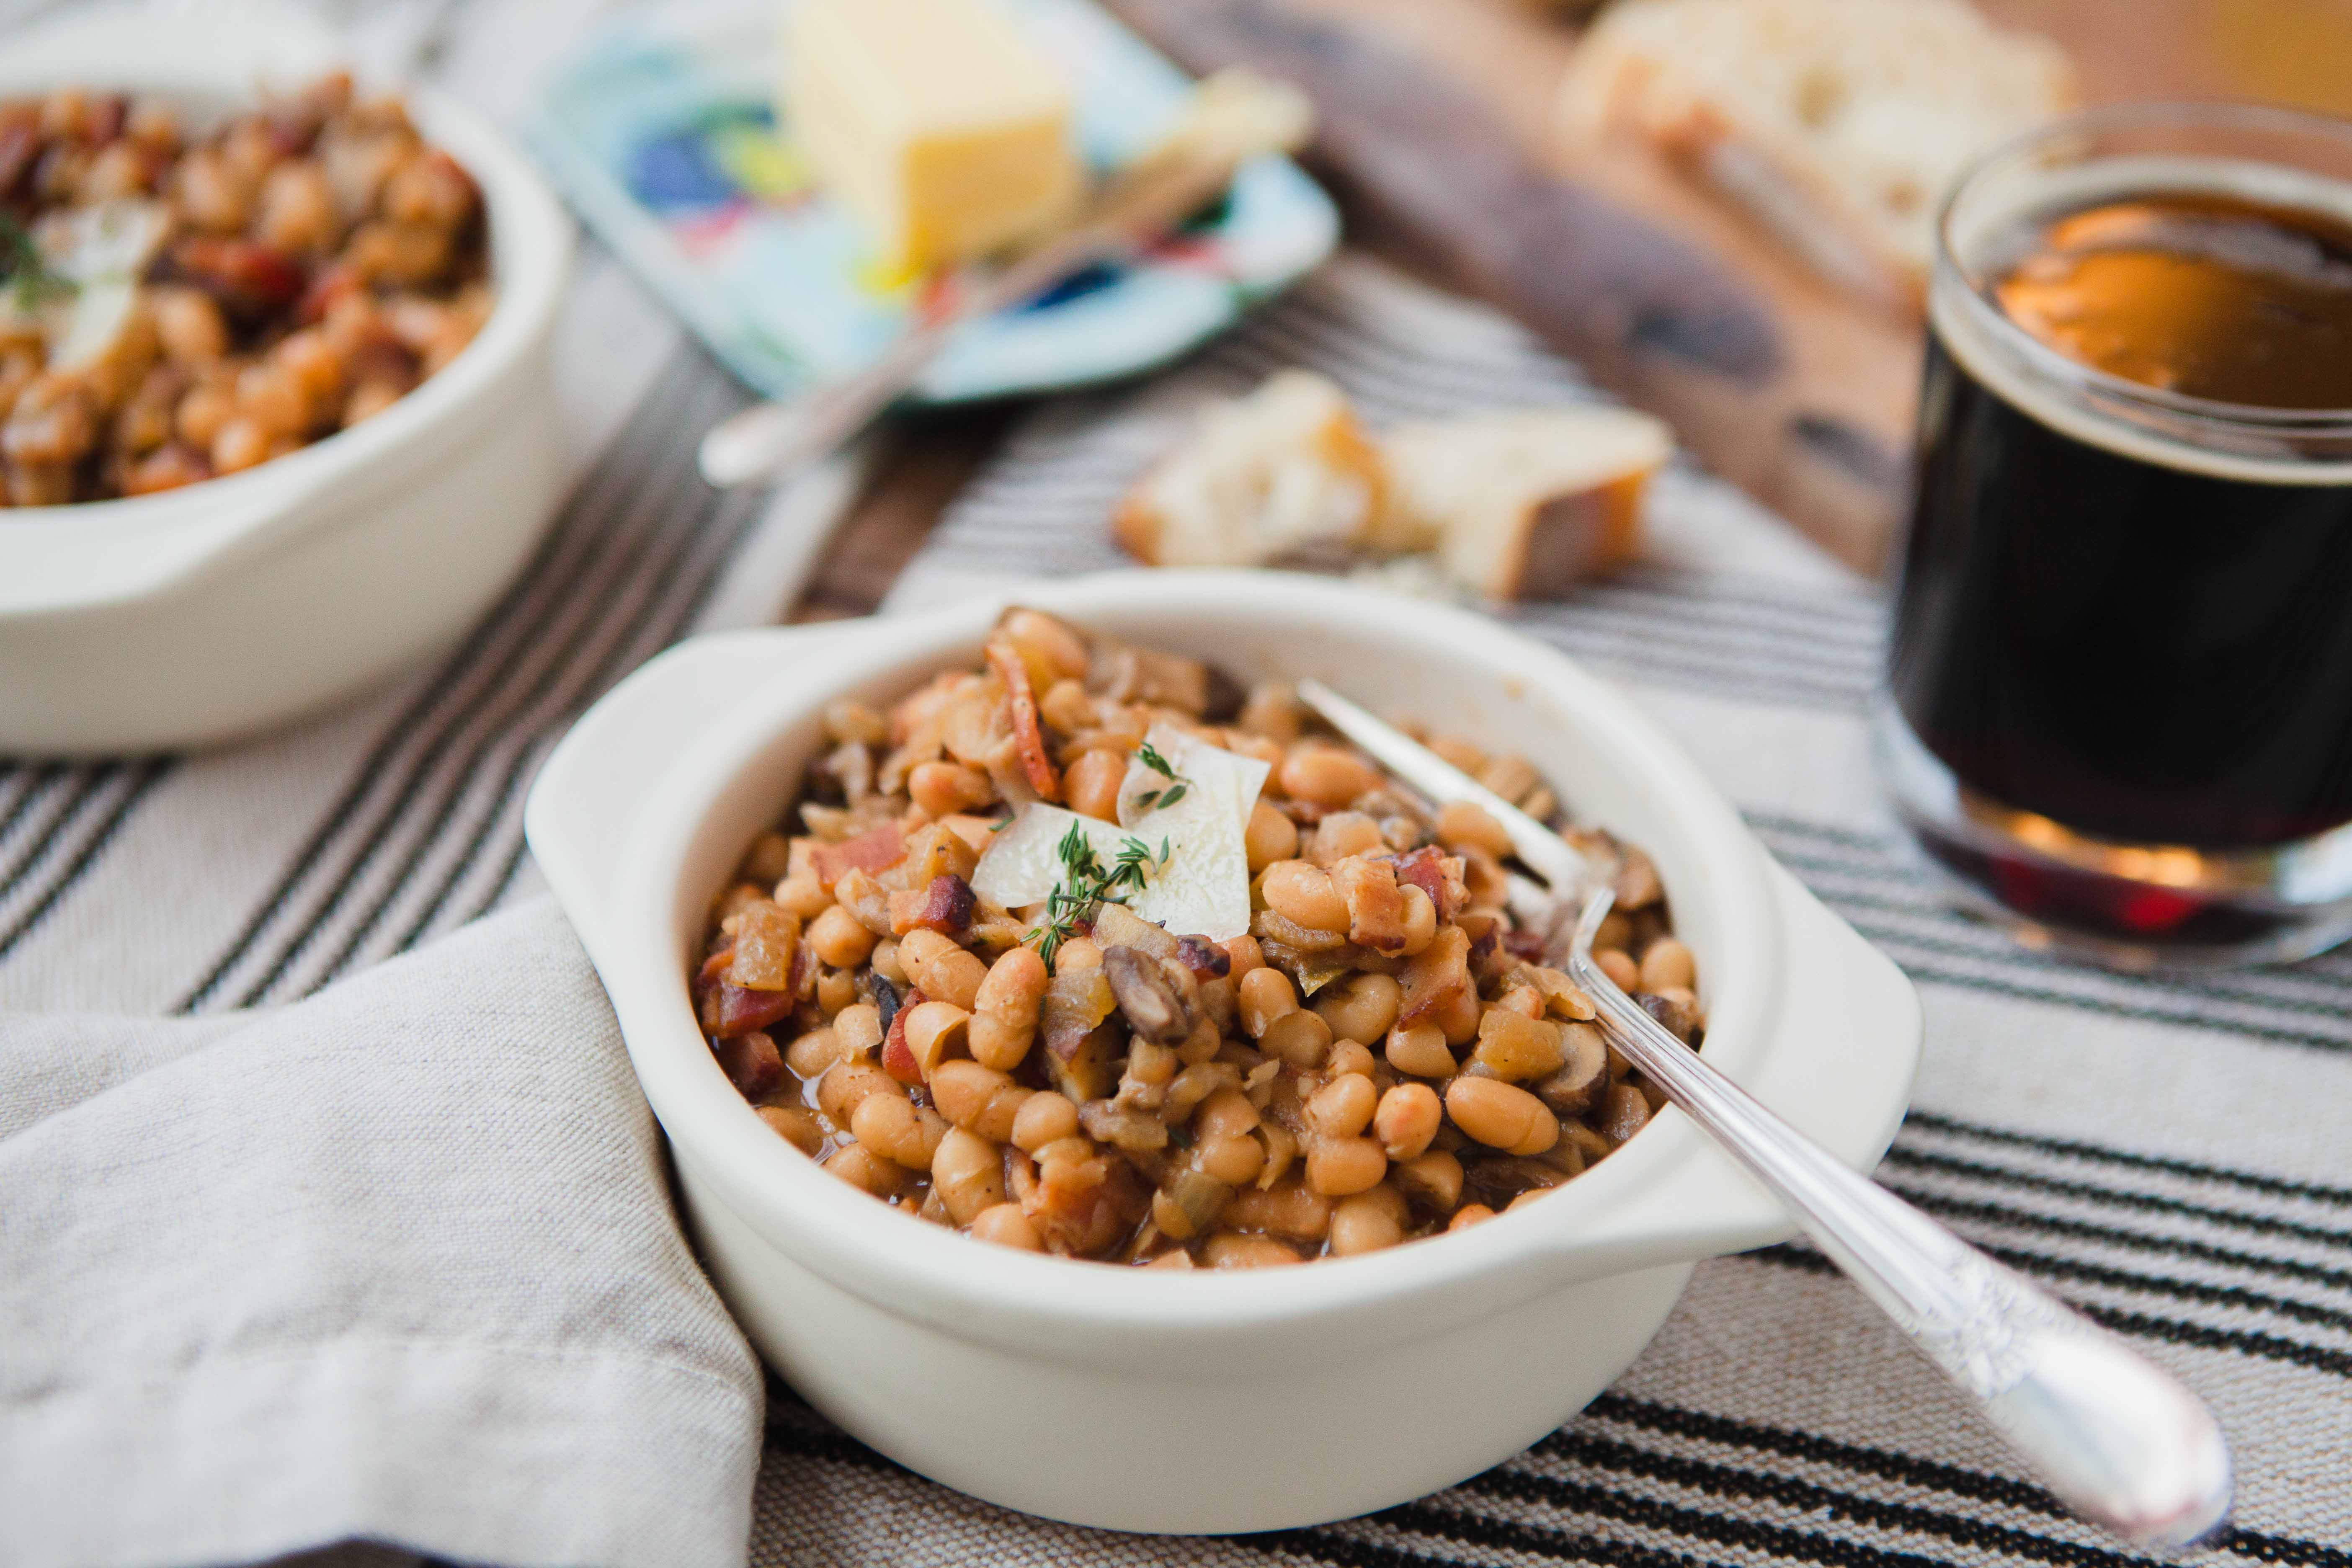 Canadian Bean-otto is a quick and easy one pot meal featuring beans, beer, cheese and mushrooms!